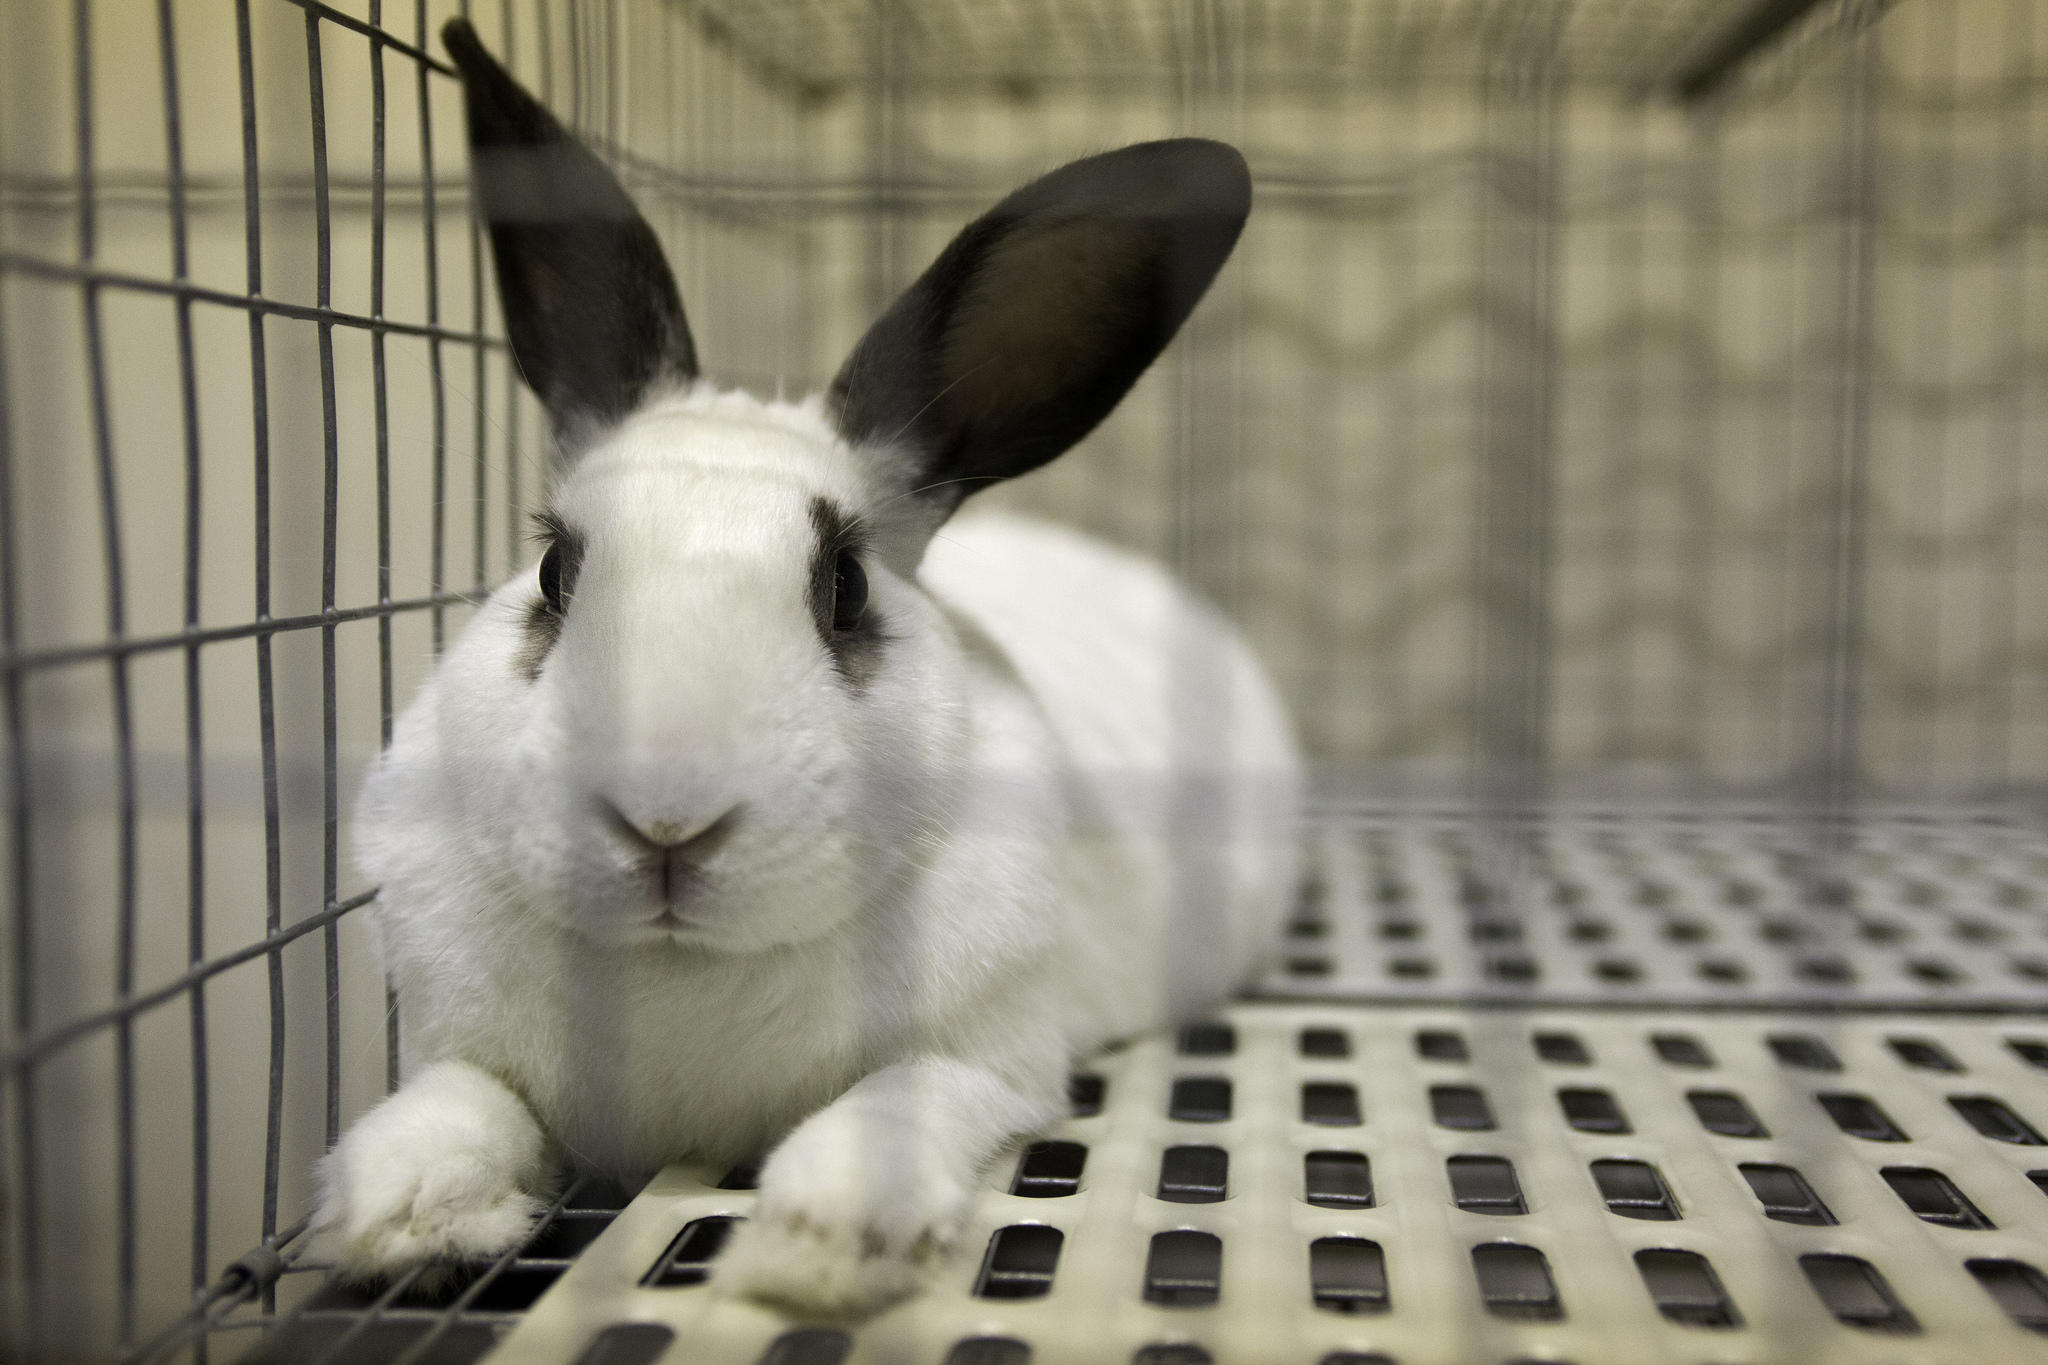 animal shelters urge people not to buy live bunnies for easter kut